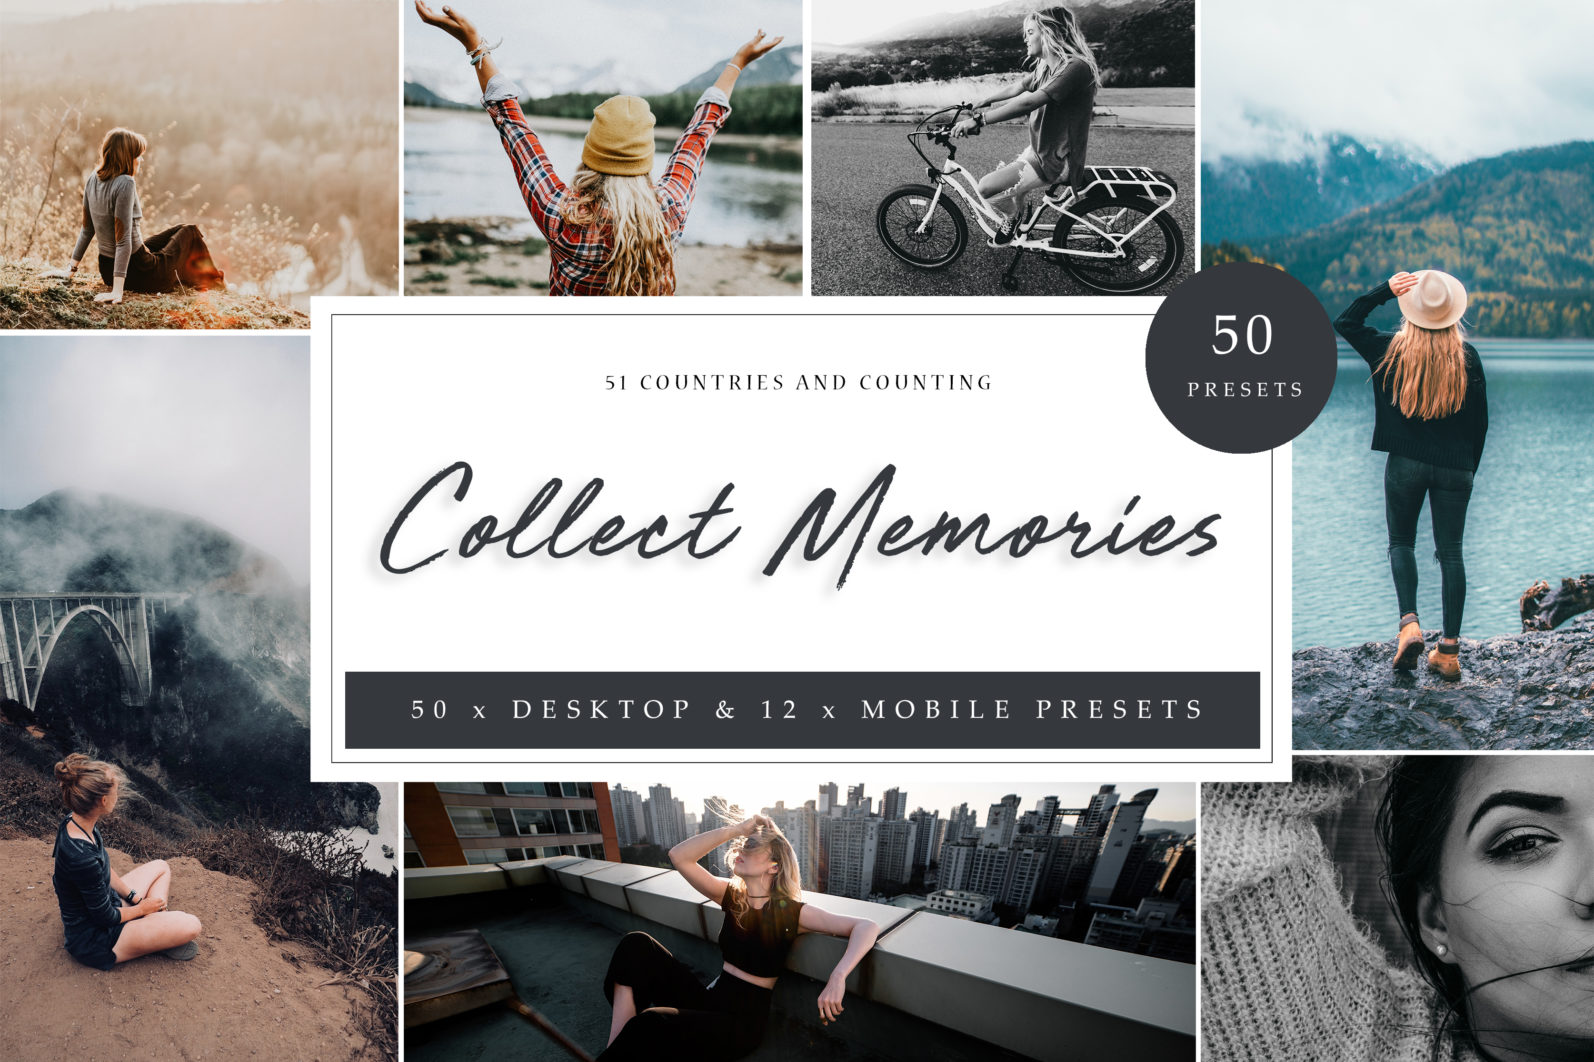 50 x TRAVEL BLOGGER PRESETS // Collect Memories // THE ONLY PRESETS YOU WILL EVER NEED - Collect Memories LR copy scaled -